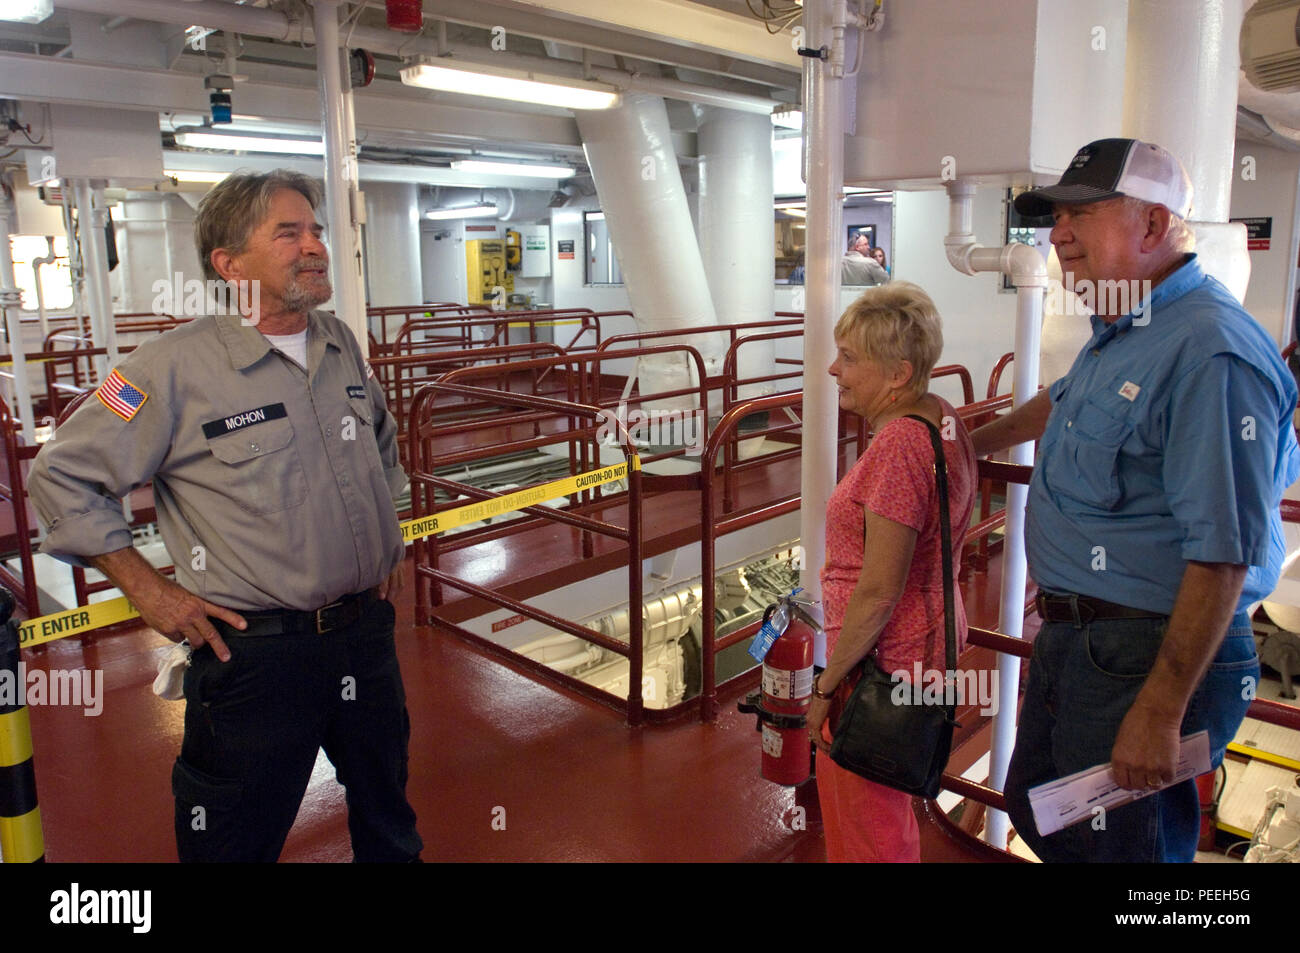 Walker Mohon (Left) welcomes visitors to the engine room of the Motor Vessel Mississippi during a public tour of the vessel docked at Ross's Landing in Chattanooga, Tenn., Aug. 7, 2015. The M/V Mississippi spends more than 90 percent of its time as a working towboat, moving barges, equipment and supplies on the lower Mississippi River. The M/V Mississippi, built in 1993 by Halter Marine, is the fifth Army Corps of Engineers towboat to bear the name. It is the largest diesel towboat in the United States at 241-feet long, 58-feet wide and five stories high. Three 2,100-horsepower diesel engines  - Stock Image